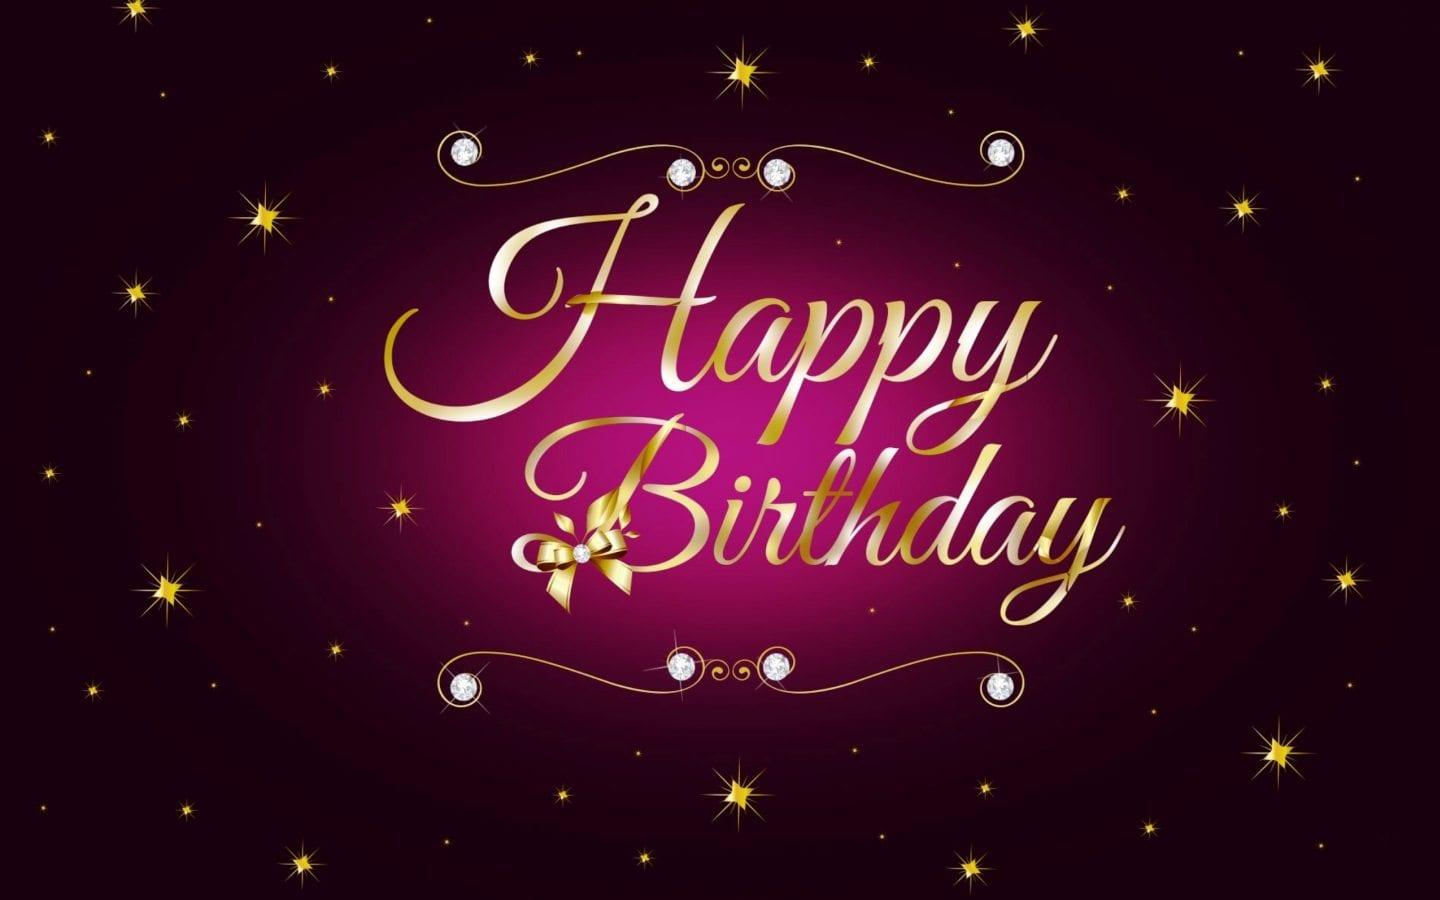 Top 10 birthday quotes wishes quotes - Top 10 Birthday Quotes Wishes Quotes